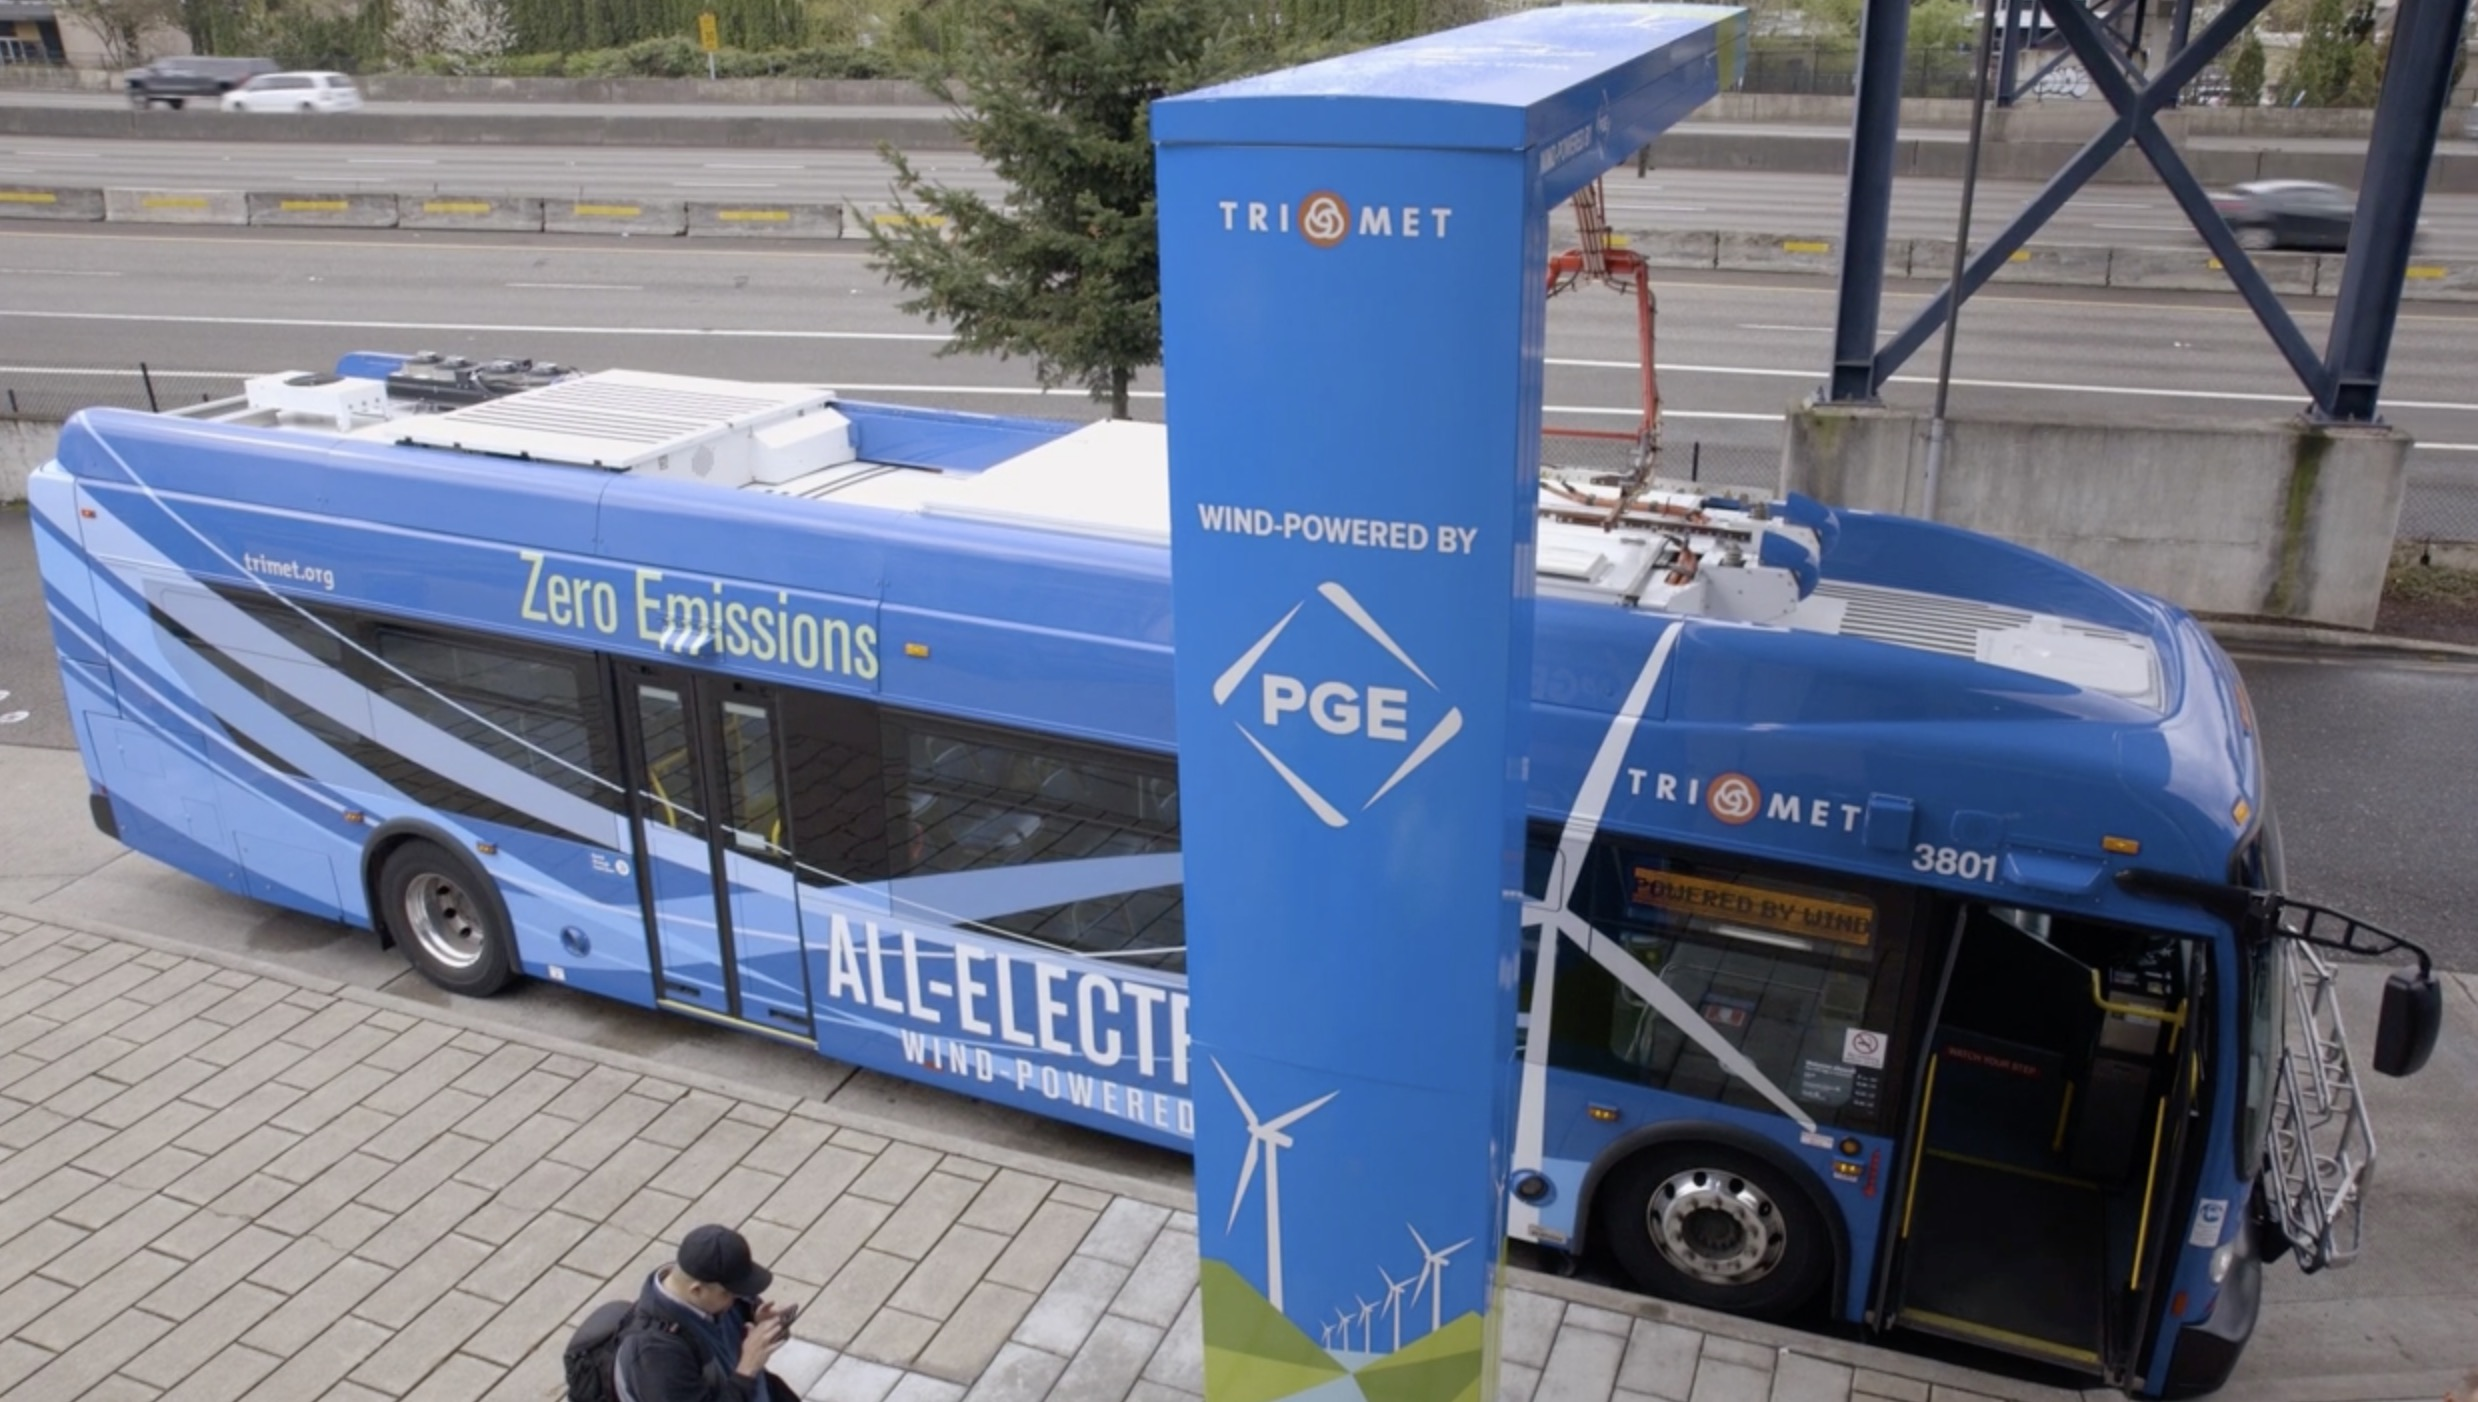 Trimet Launches New Zero Emission Wind Powered Electric